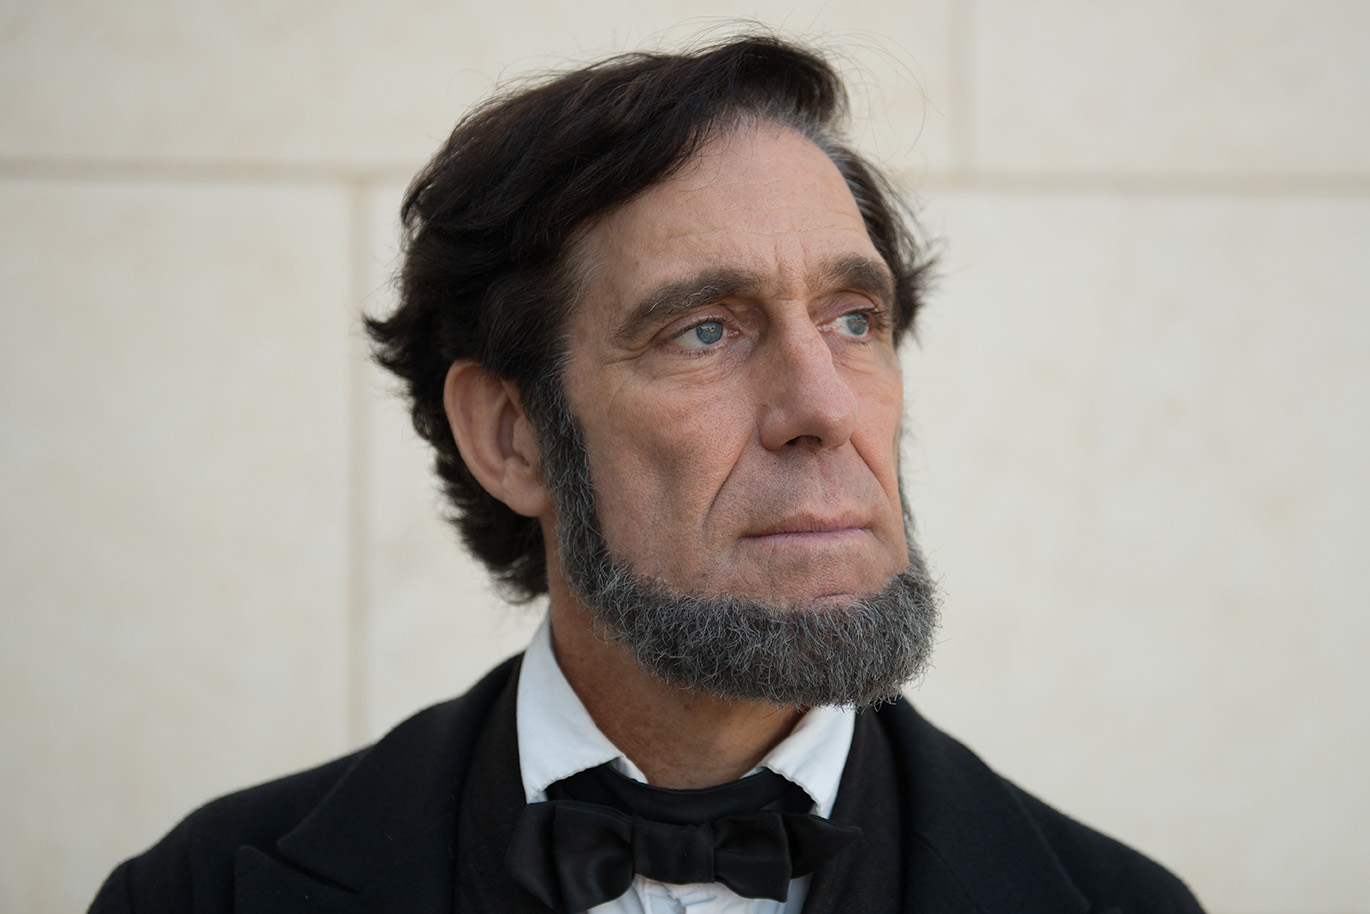 Randy Duncan, an Abraham Lincoln impersonator, poses for a portrait outside the Abraham Lincoln Presidential Library, Monday, Sept. 10, 2018, in Springfield, Ill. (Neeta Satam for Here & Now)